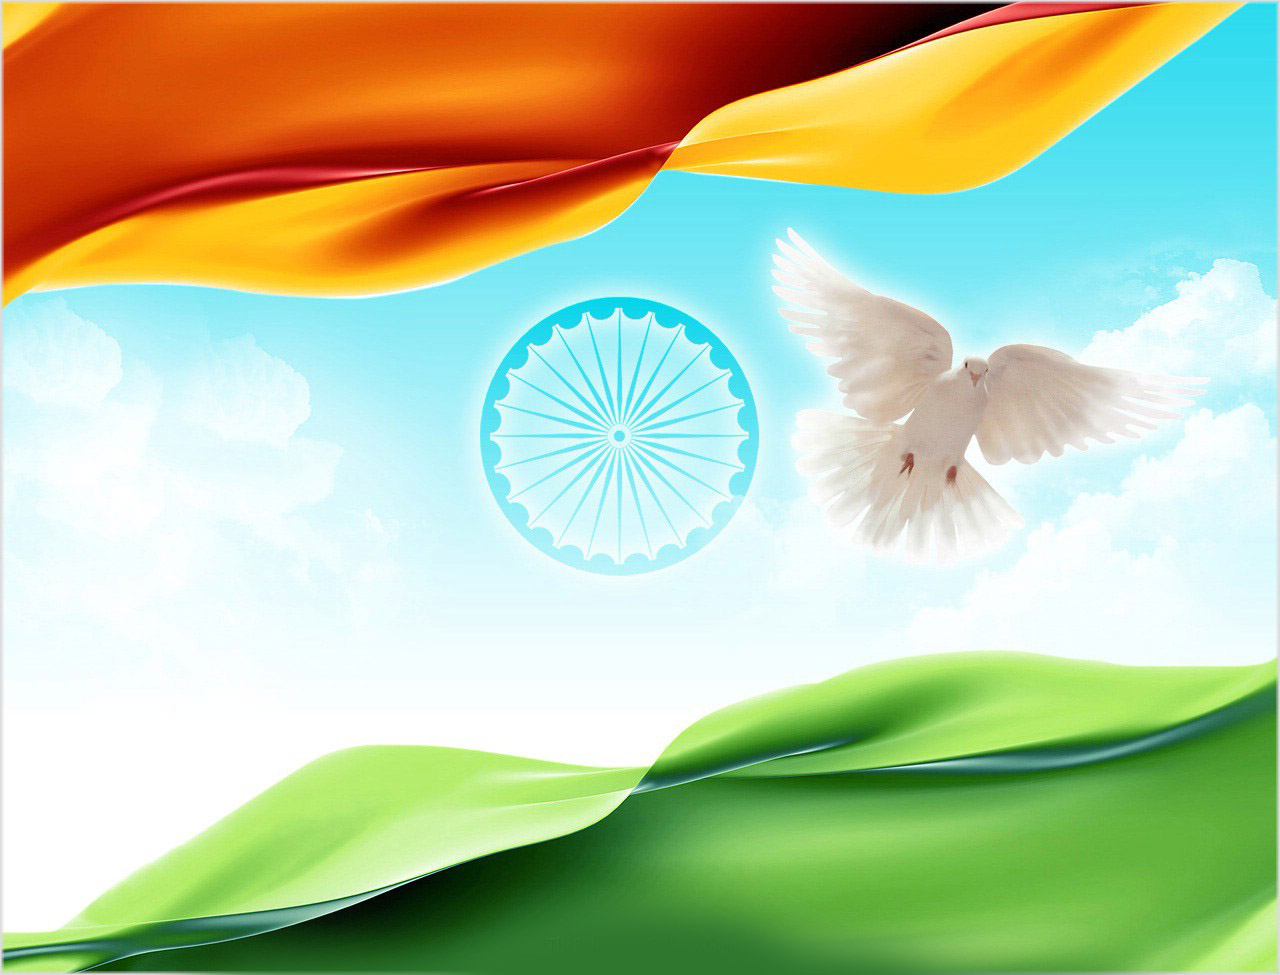 25 Indian Independence Day Wallpapers and Wishes Web Revisions 1280x975